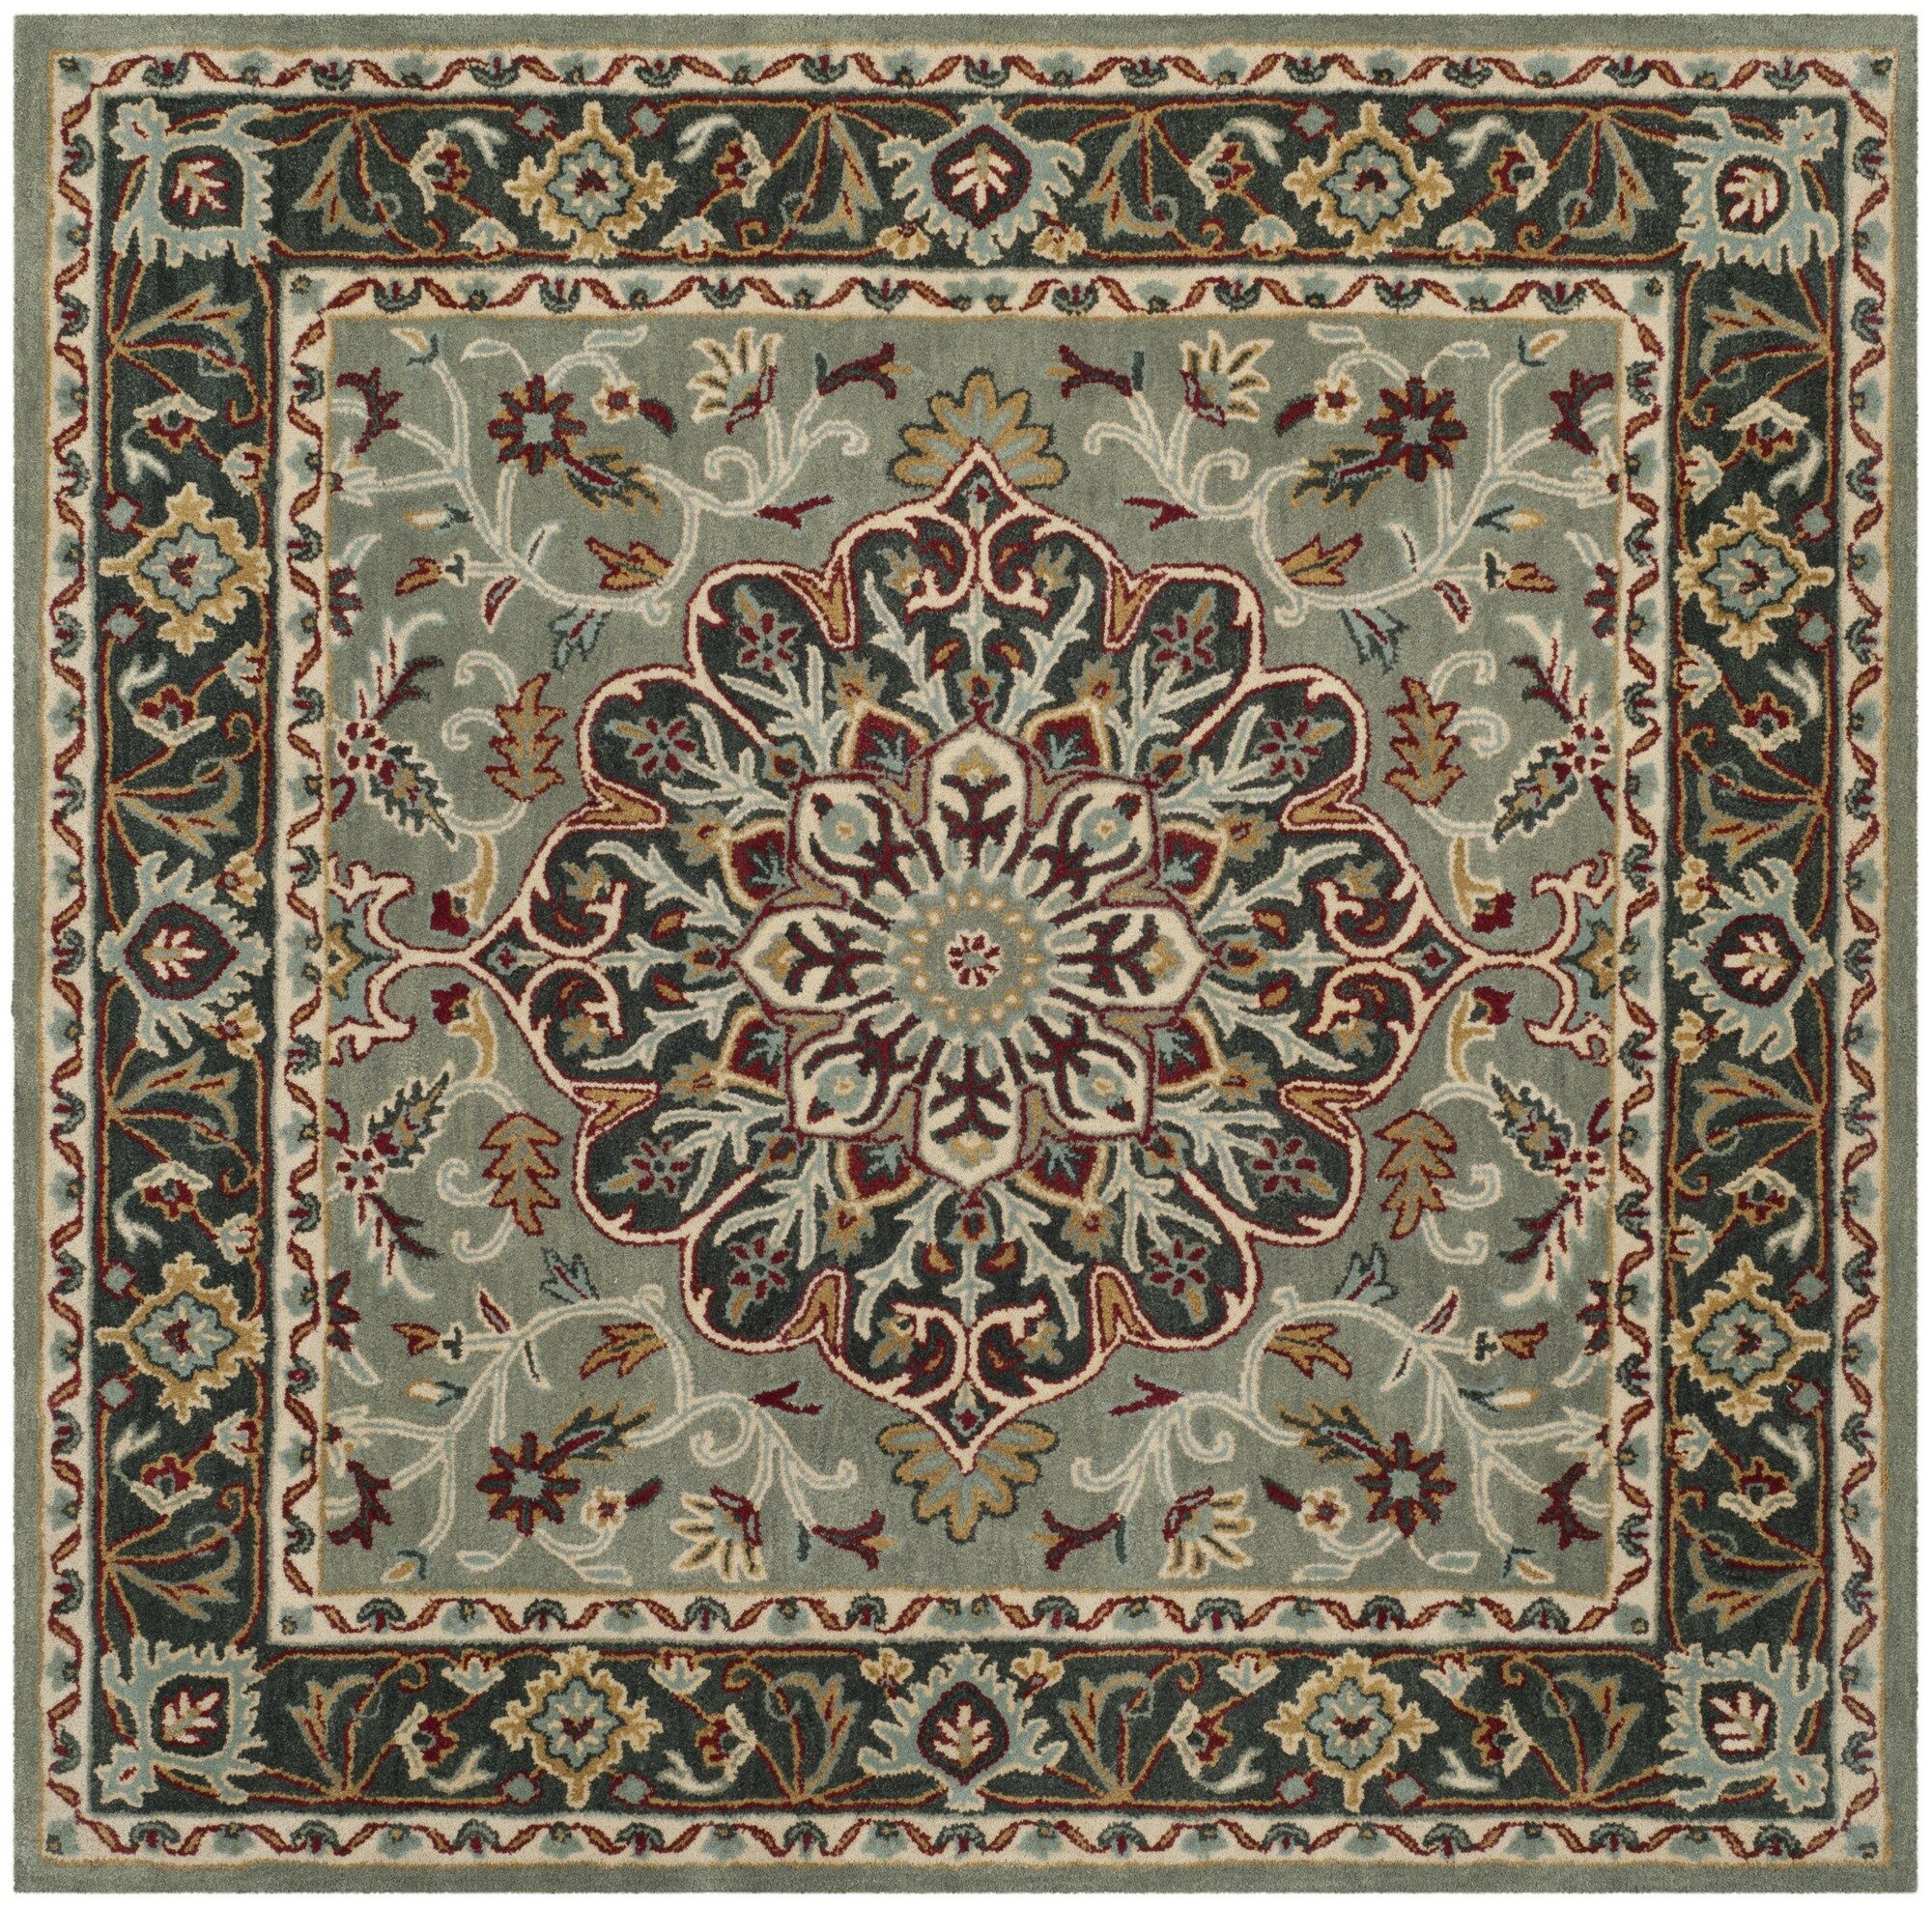 Cranmore Hand-Tufted Gray/Charcoal Area Rug Rug Size: Square 6'